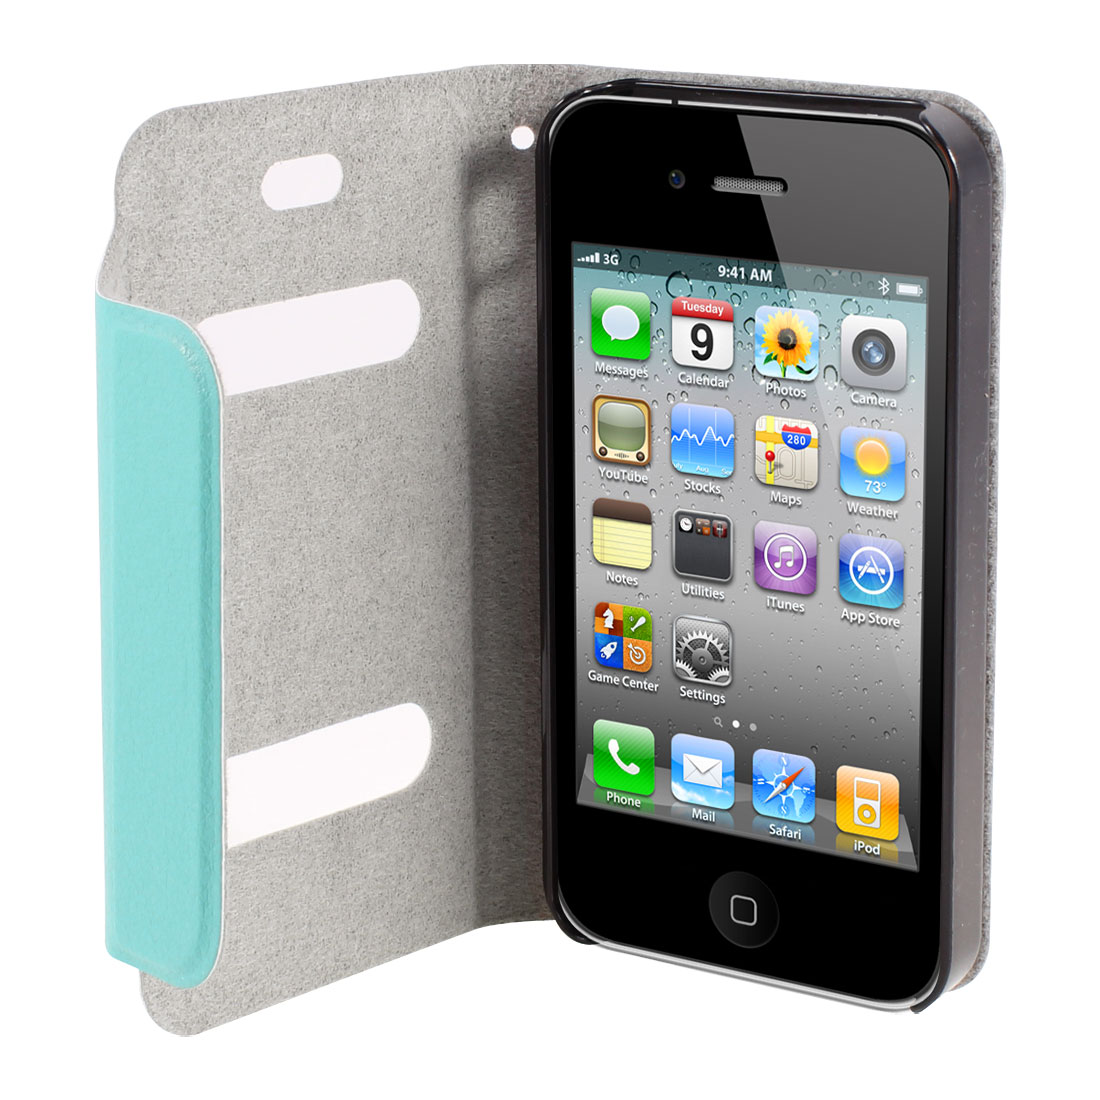 Teal Green PU Leather Magnet Flip Folio Case Cover for Apple iPhone 4 4G 4S 4GS